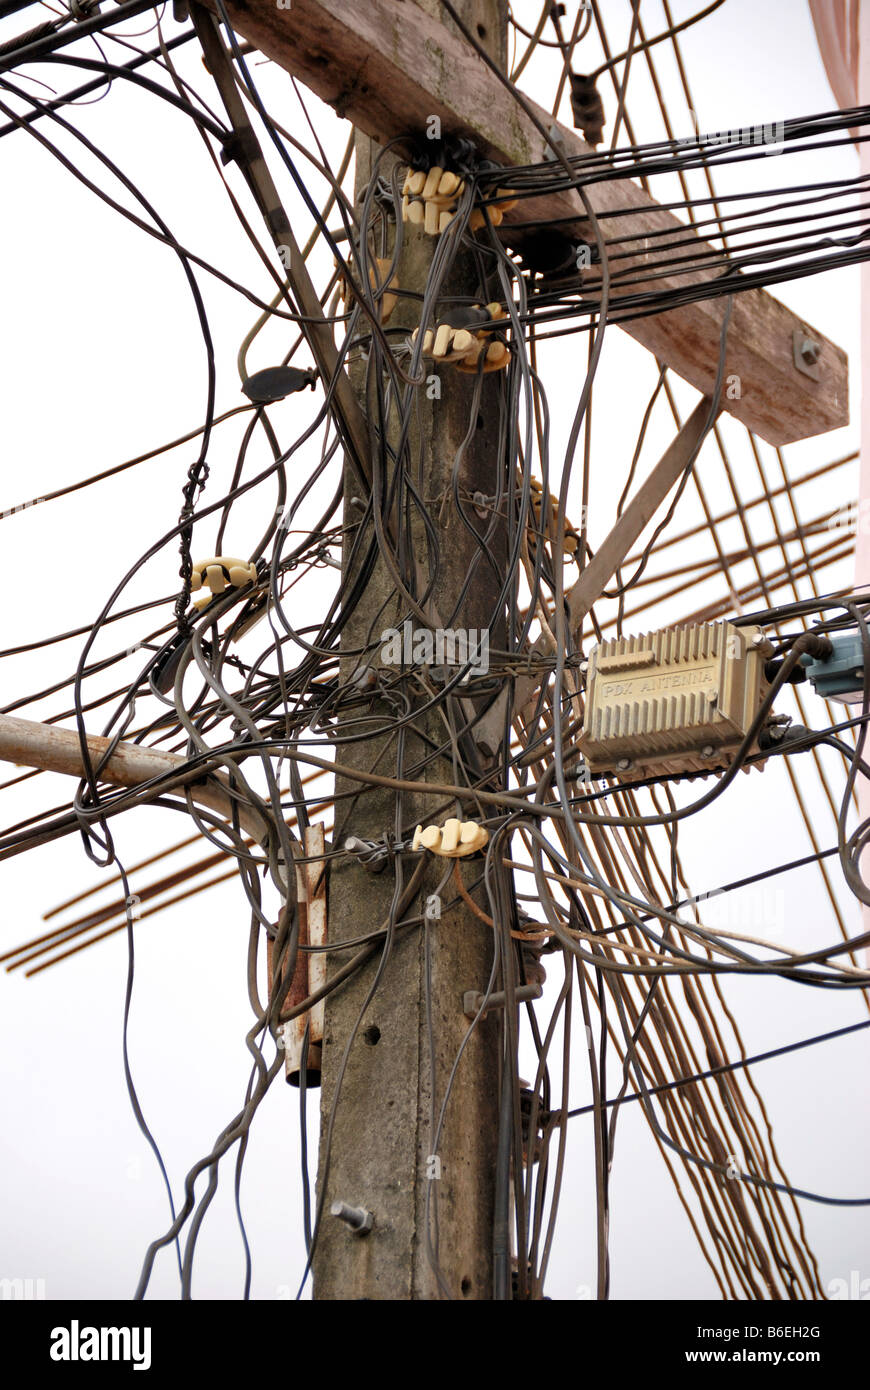 Tangle of telephone and power lines on telegraph pole - Stock Image